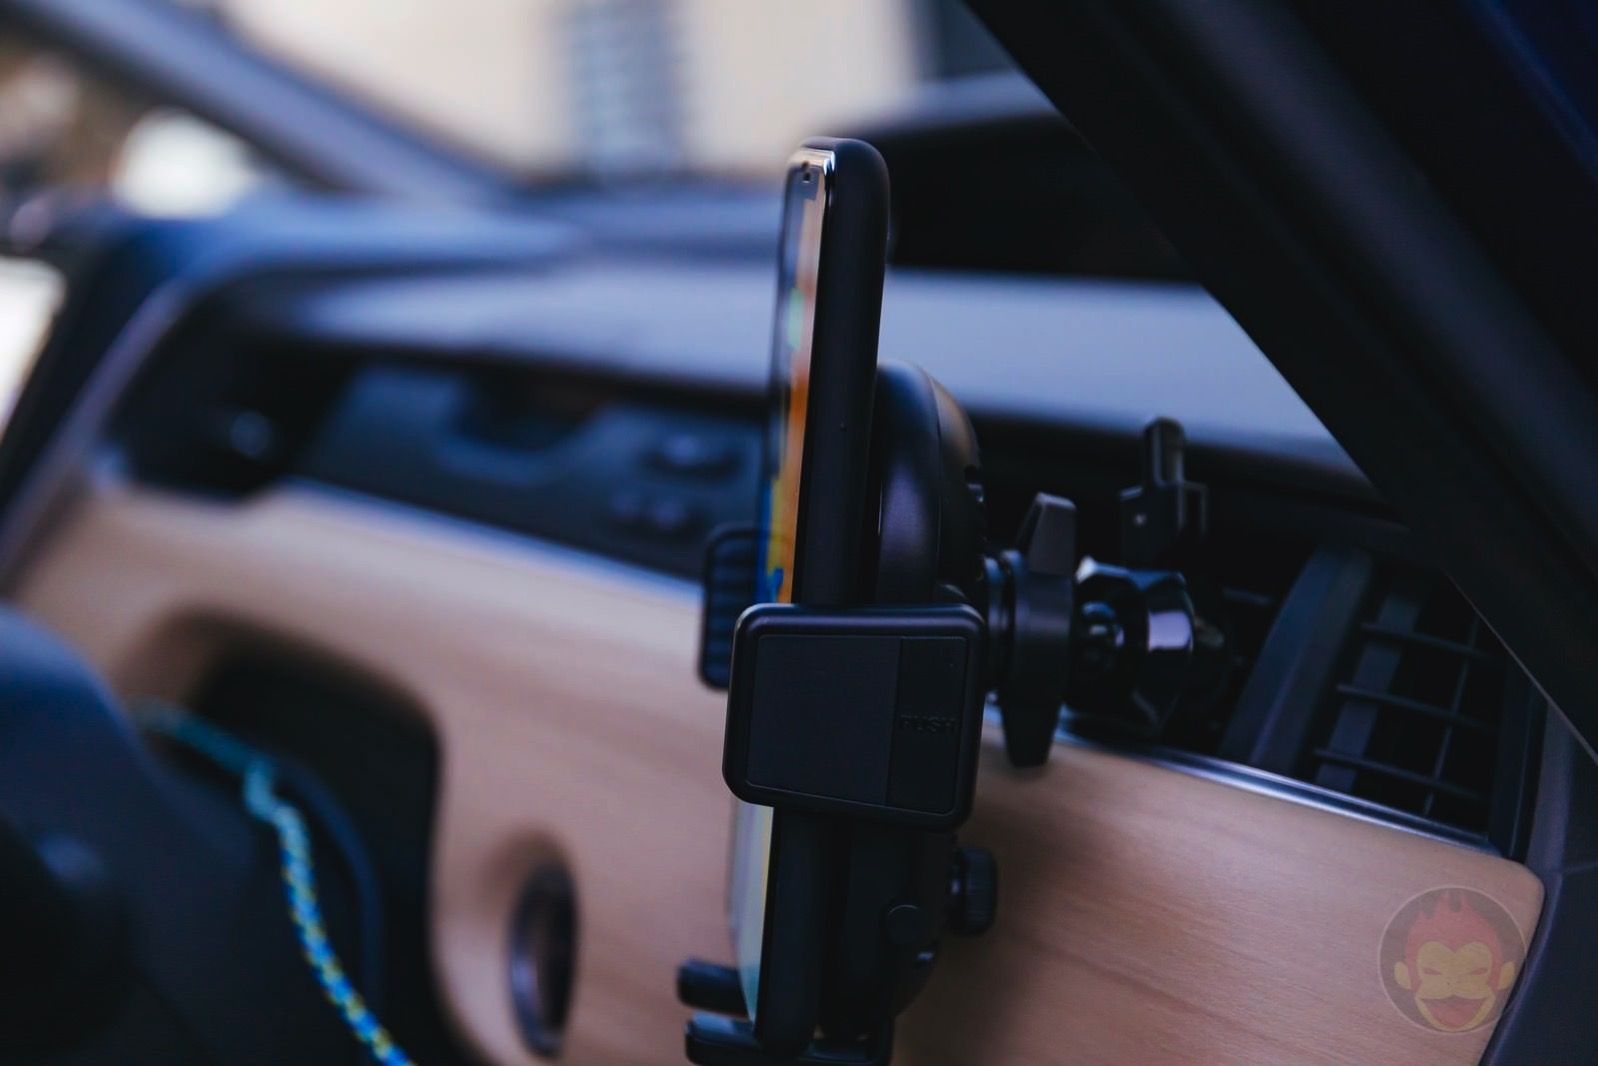 Anker-PowerWave-7_5-Car-Mount-08.jpg